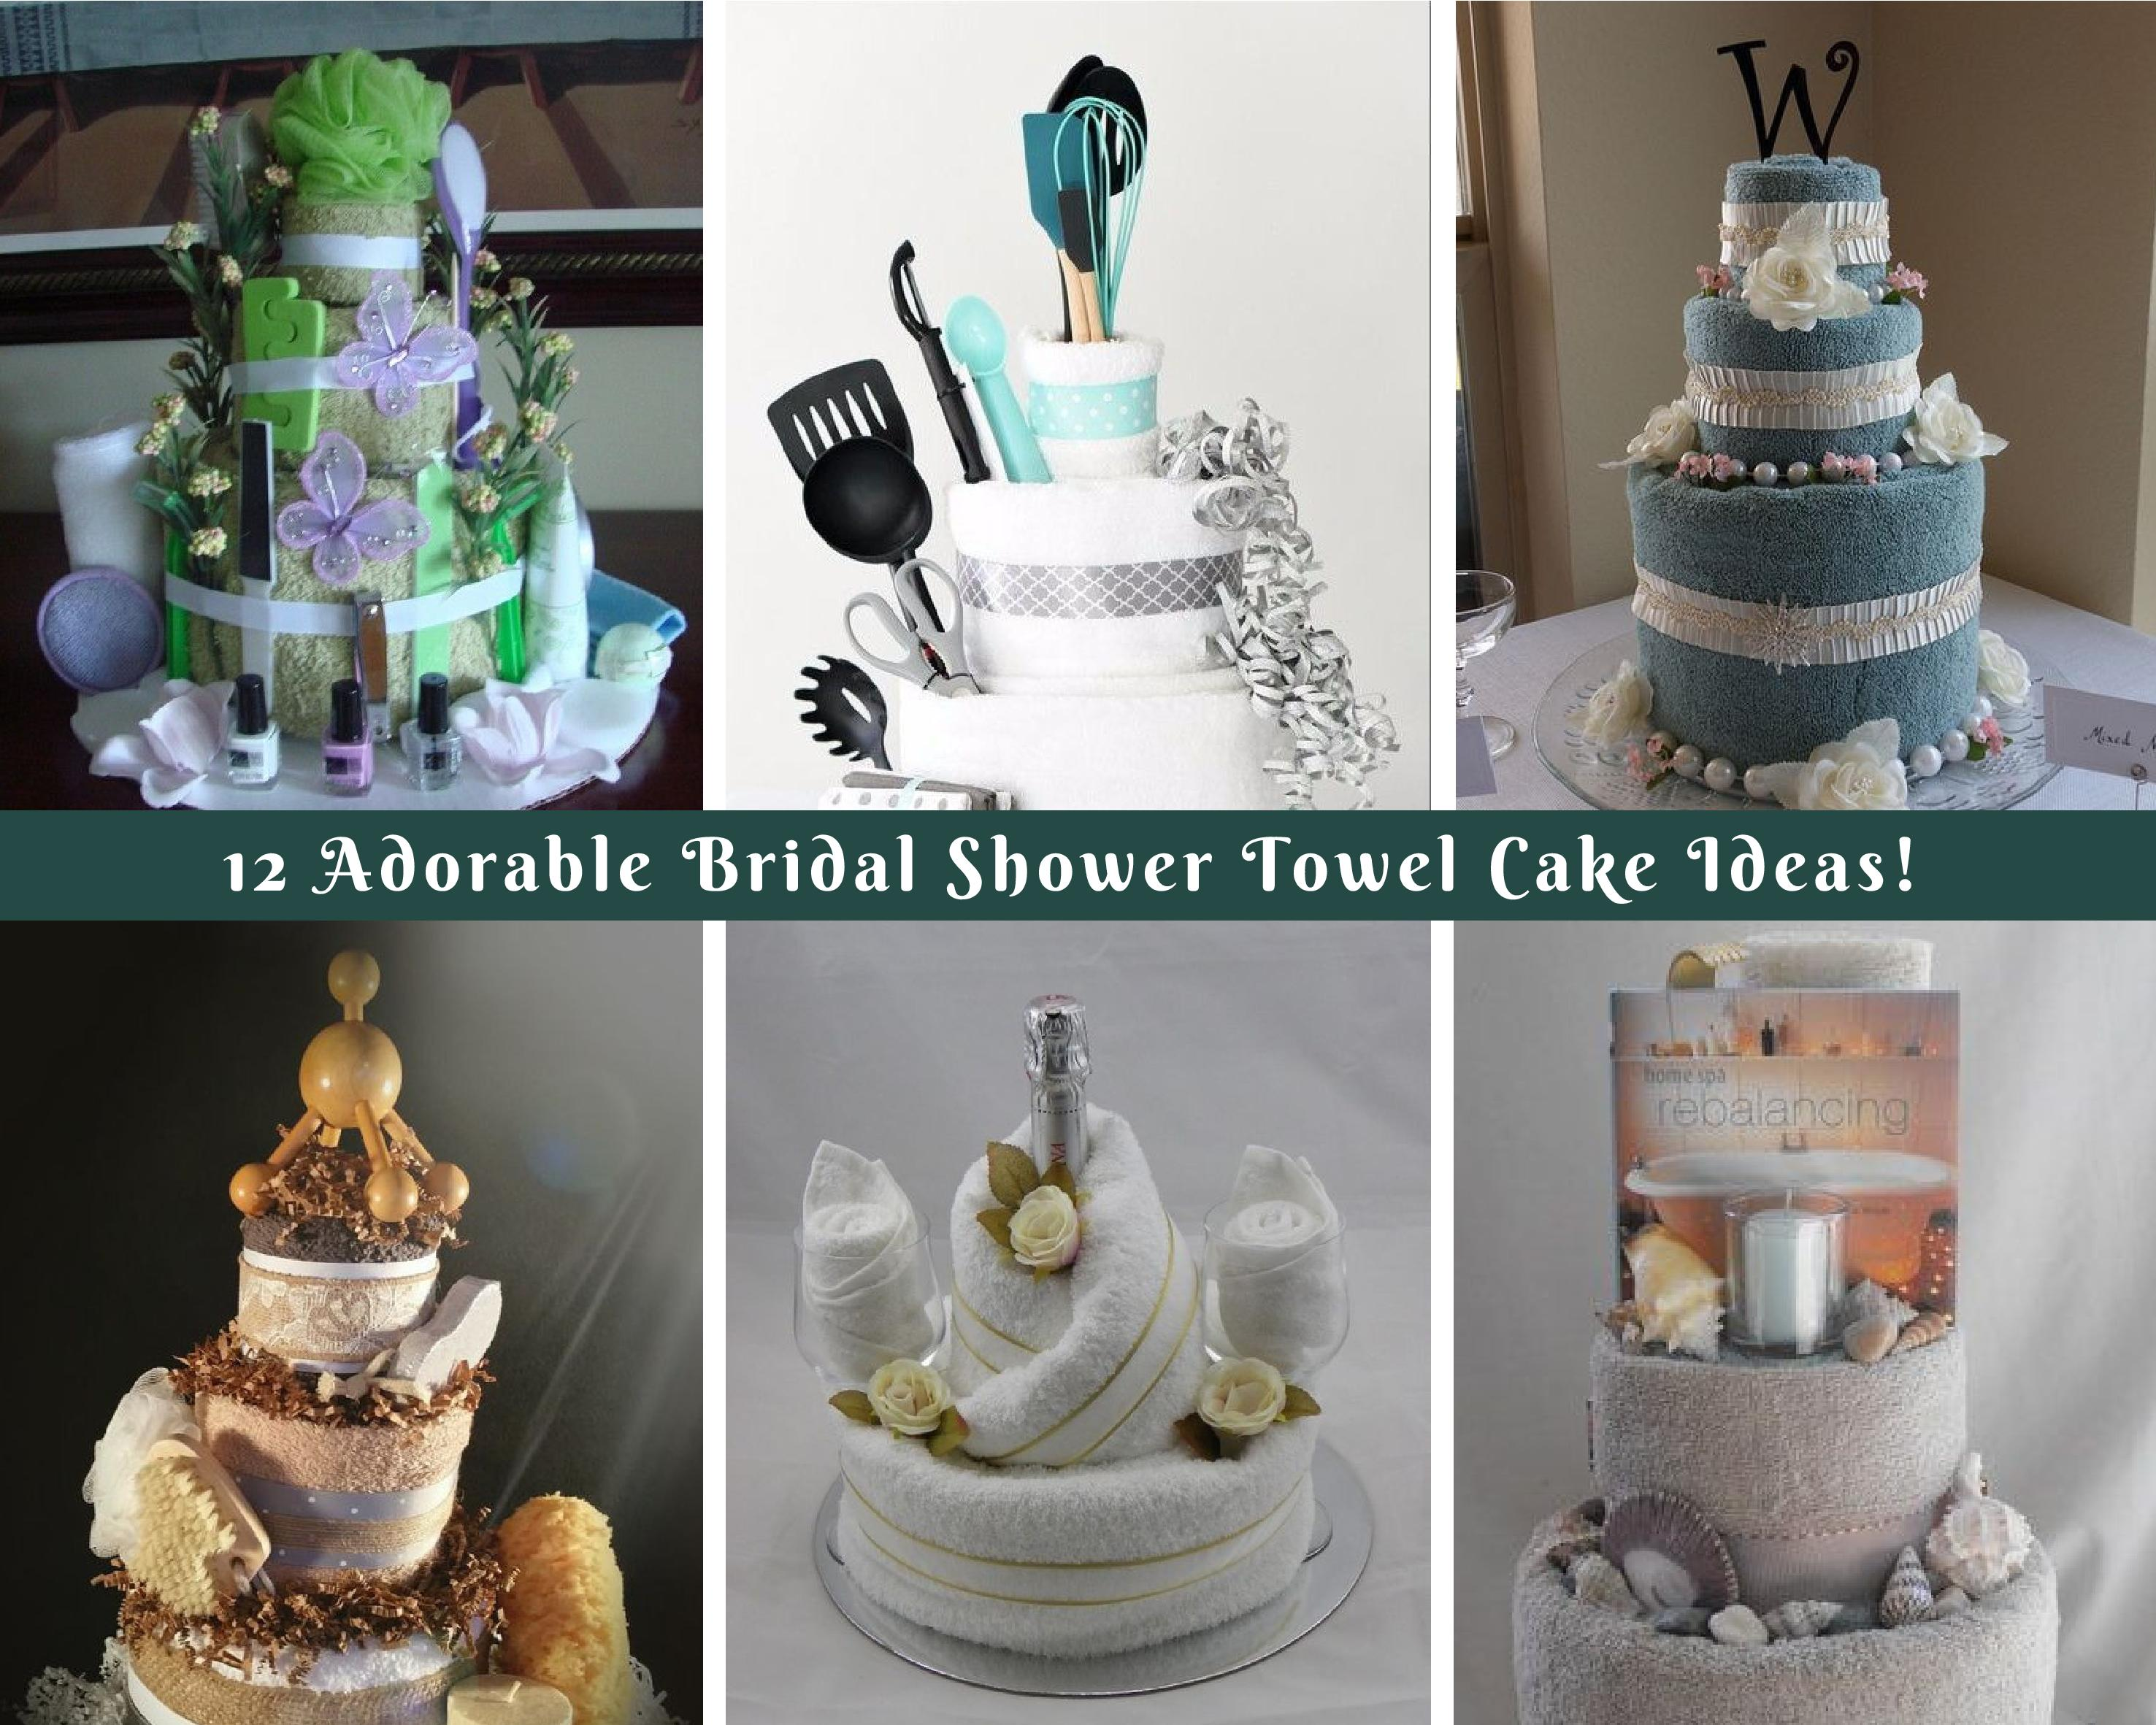 12 Adorable Bridal Shower Towel Cake Ideas